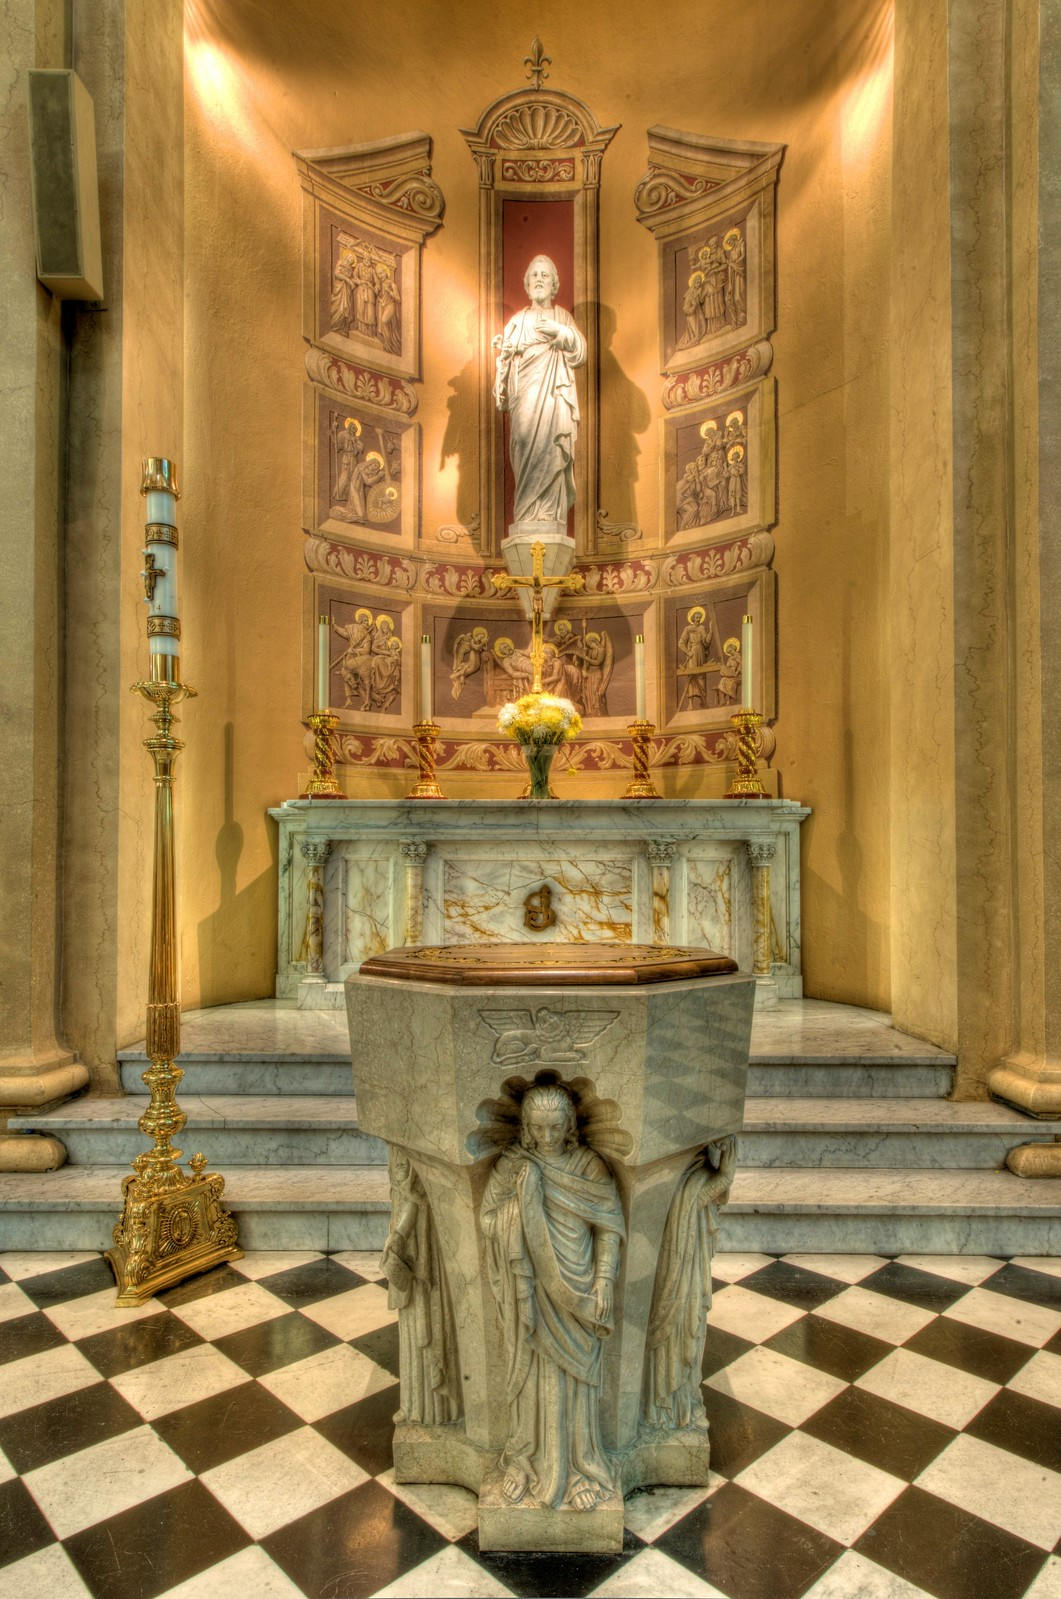 St. Joseph Altar, St. Patrick's Cathedral, Harrisburg Historic District. Credit Bestbudbrian